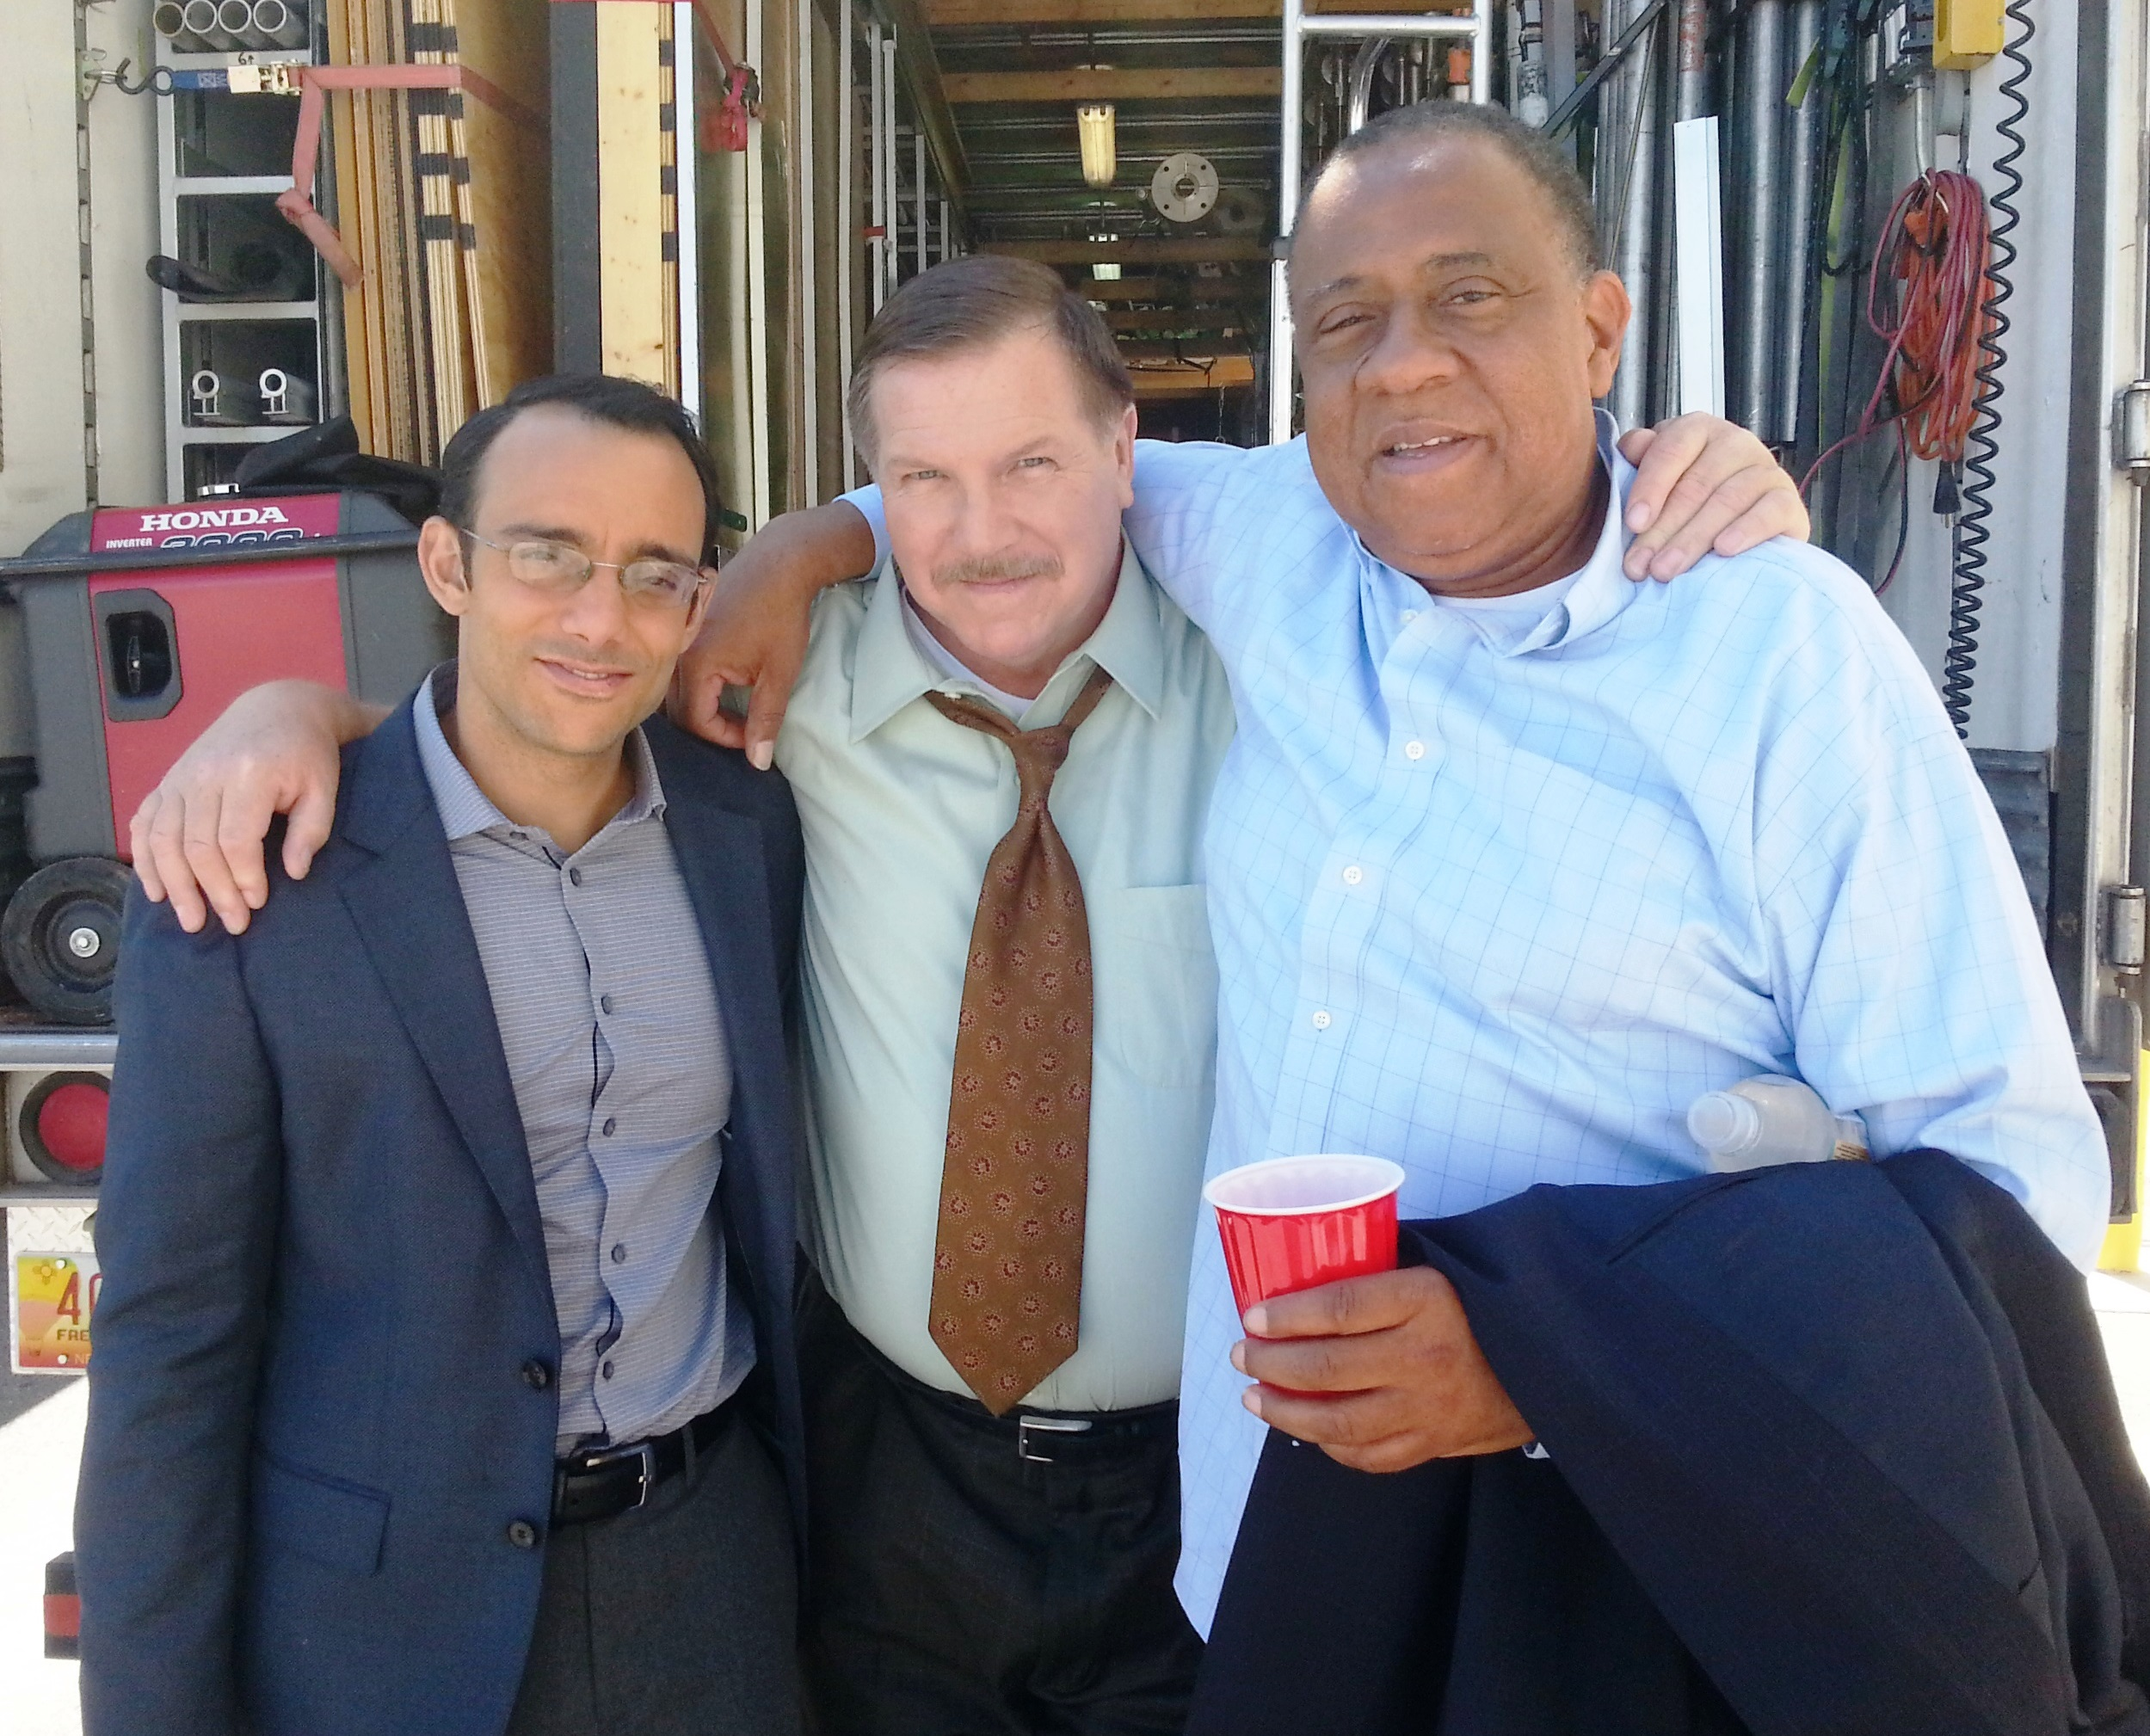 Daniel Knight (center) on the set of AMC's Better Call Saul with Omid Abtahi (left) and Barry Shabaka Henley (right)